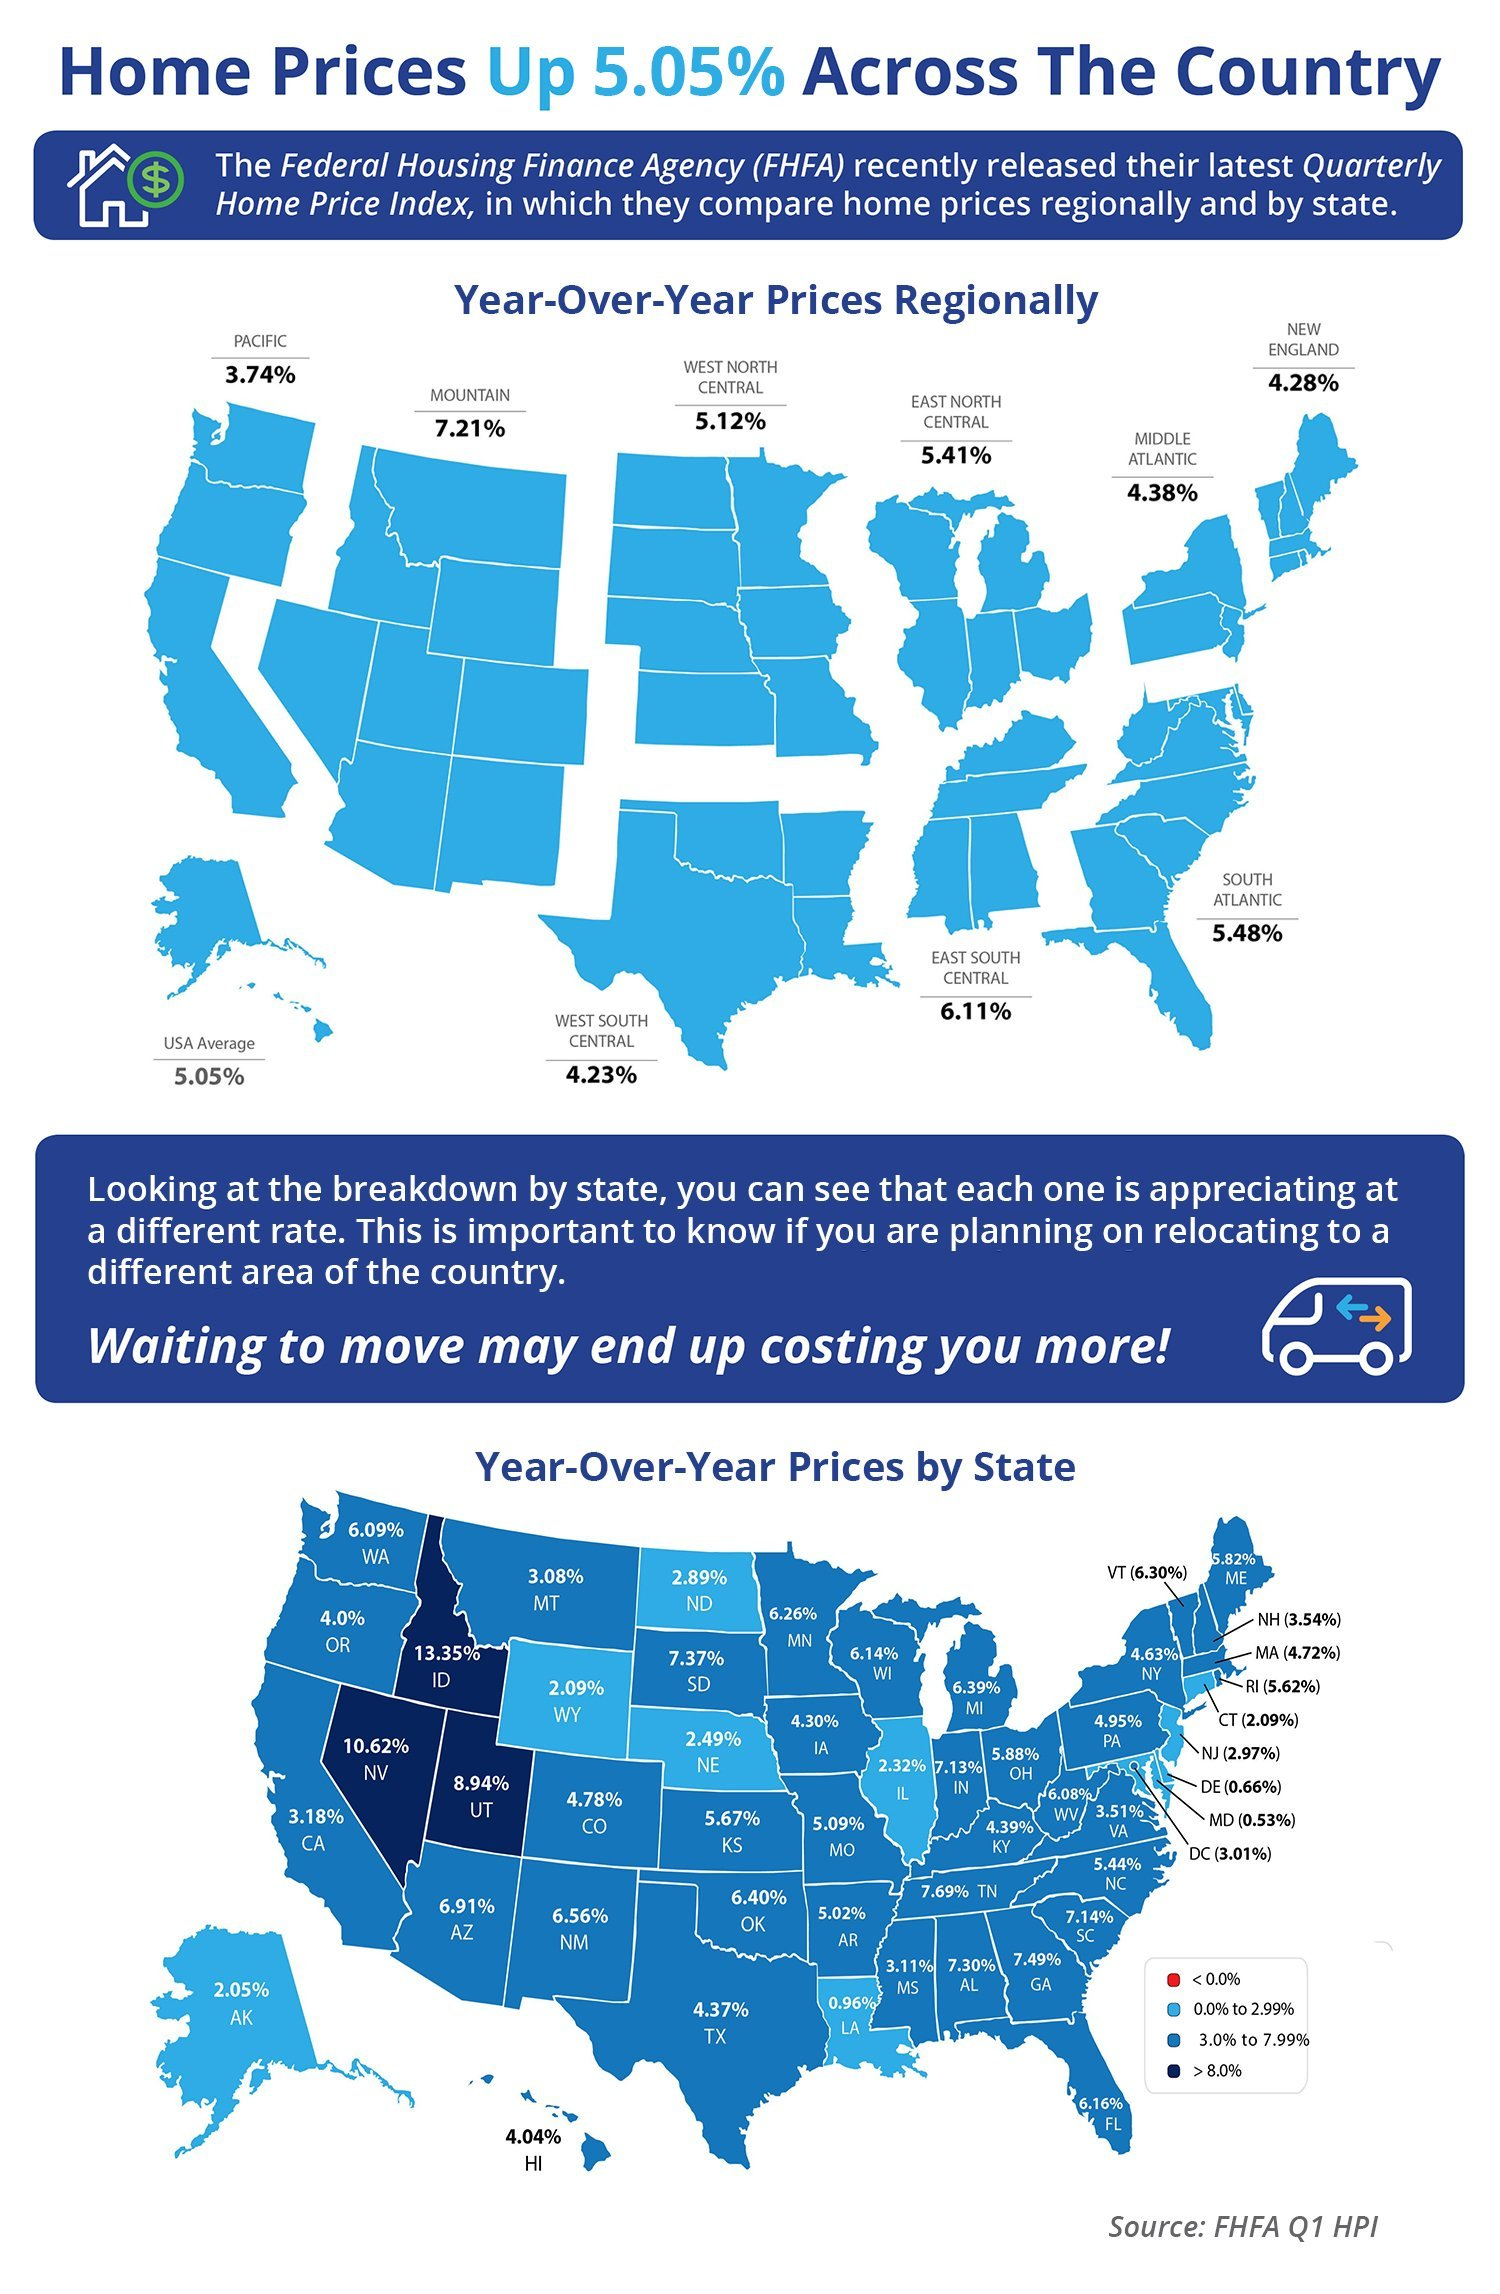 Home Prices Up 5.05% Across the Country [INFOGRAPHIC]   Simplifying The Market